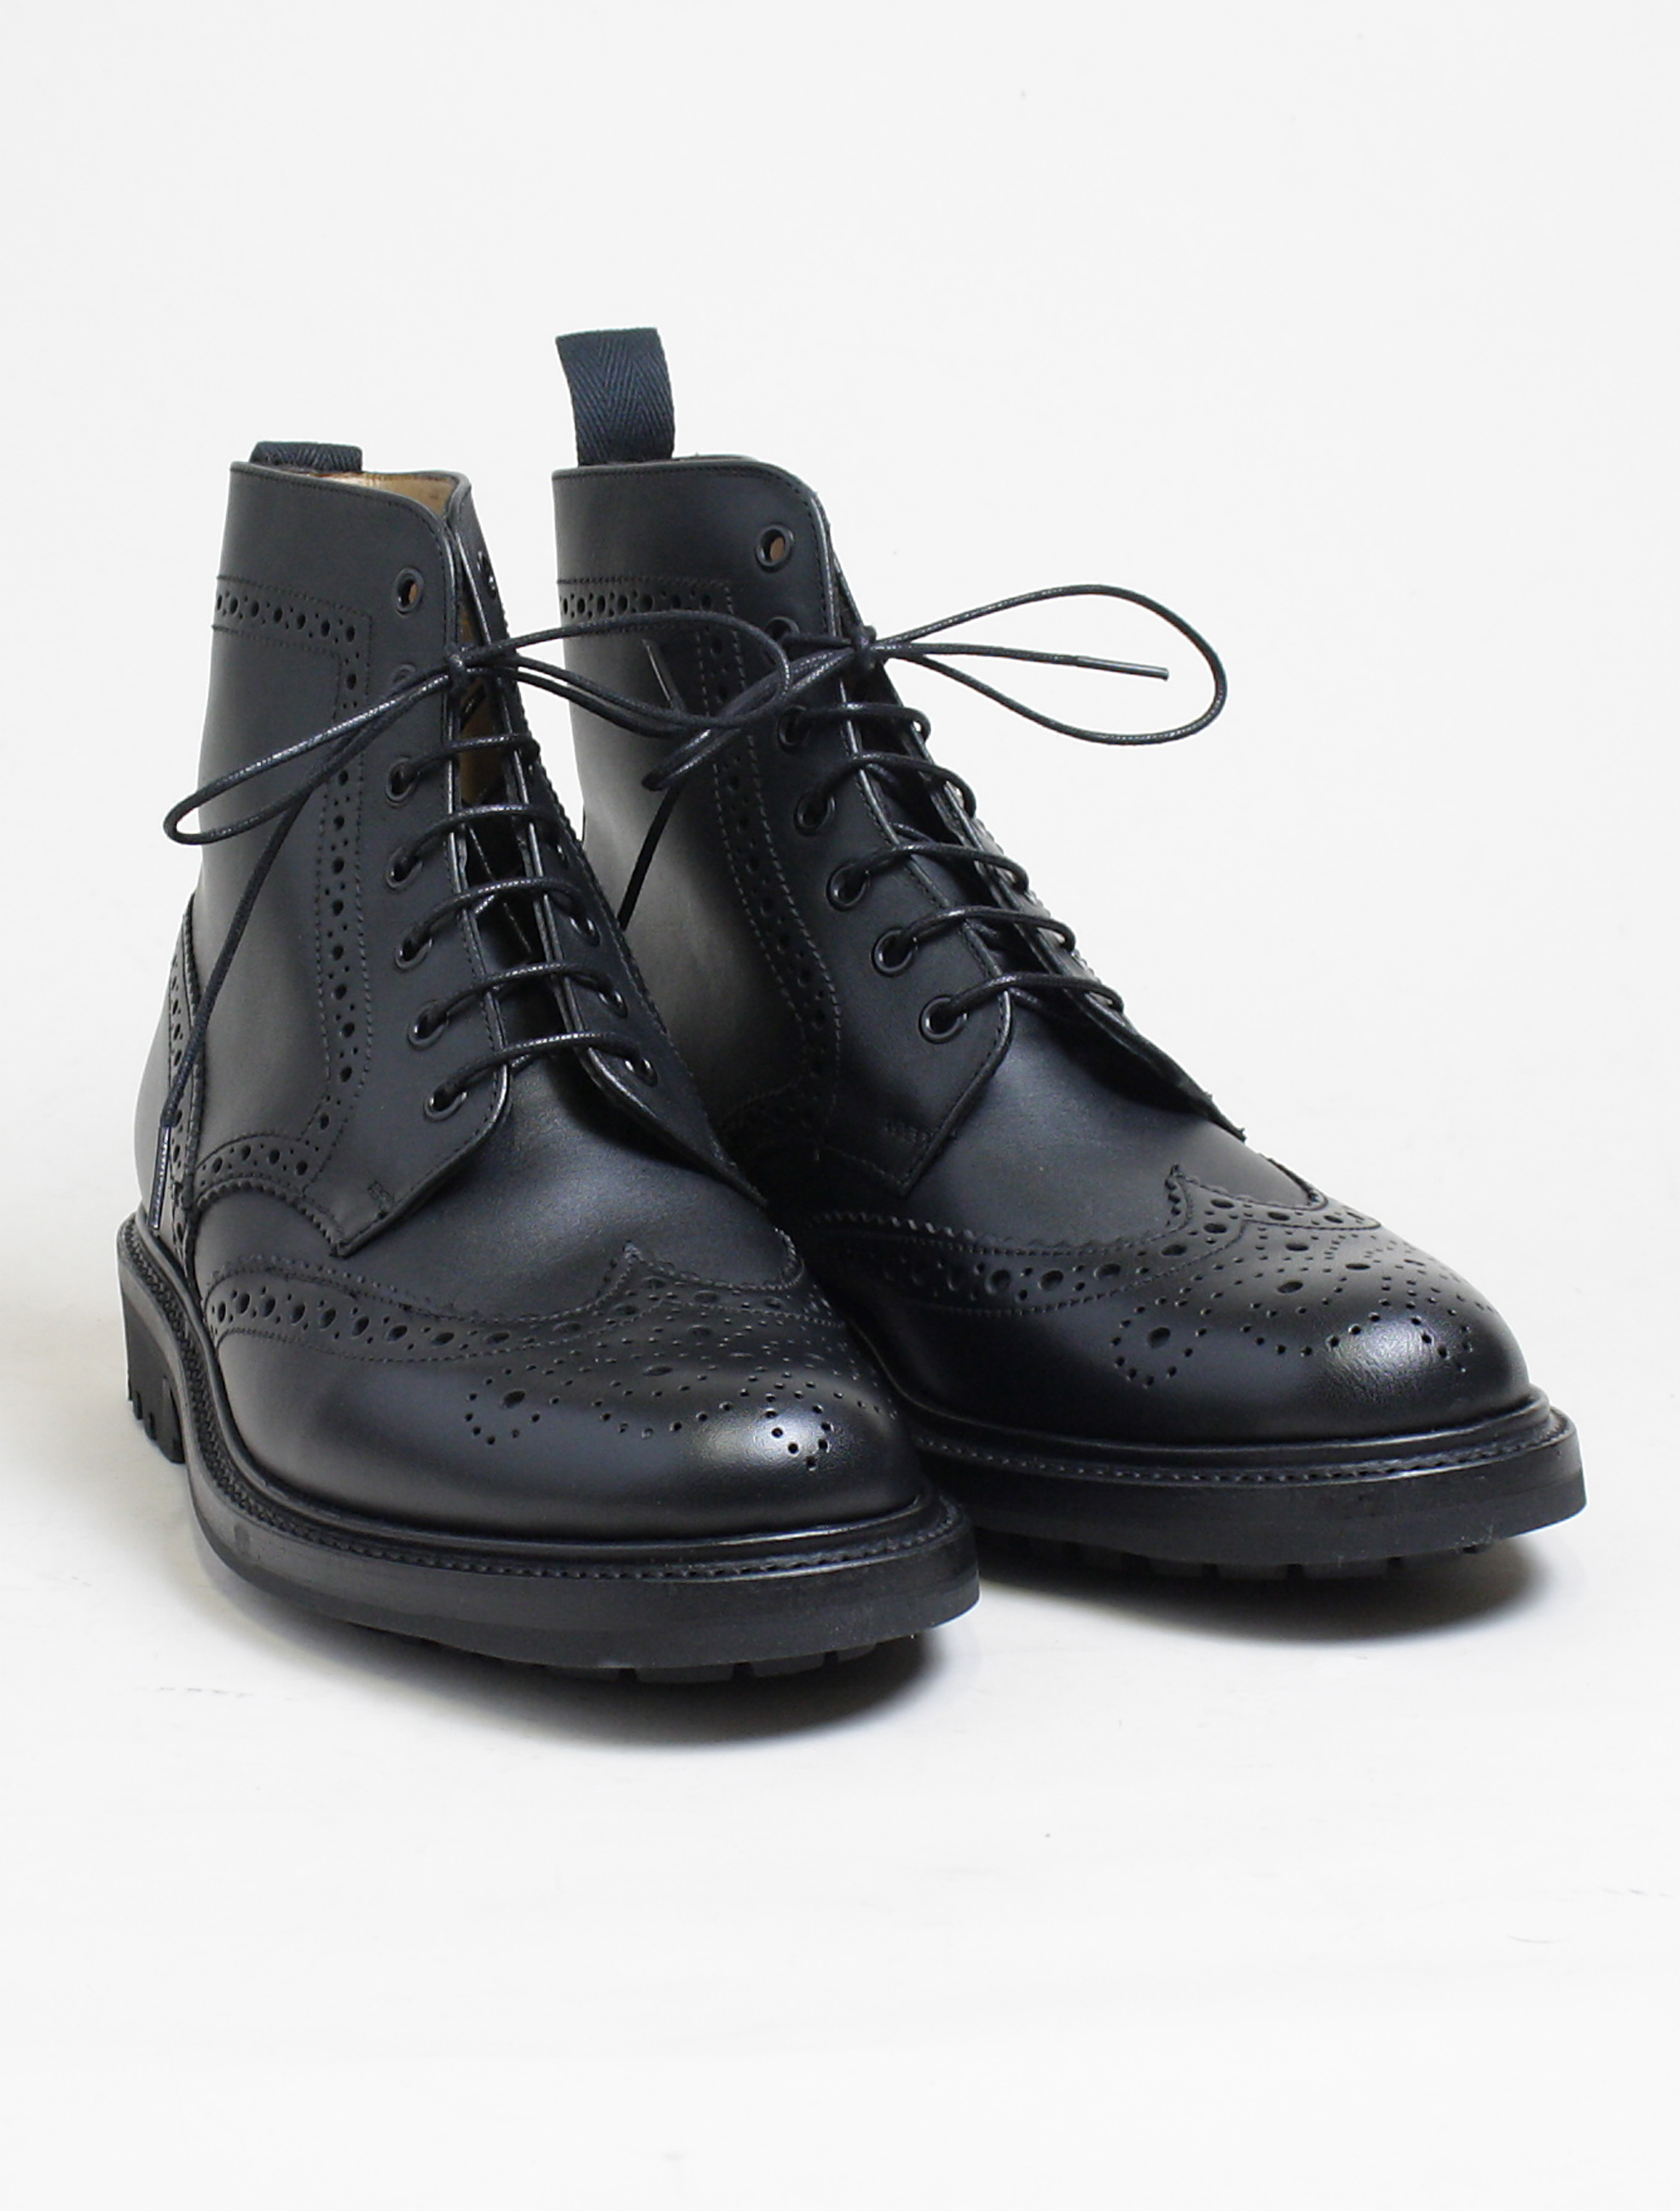 Sanders 8317 Cheltenham black brogue derby boot paio